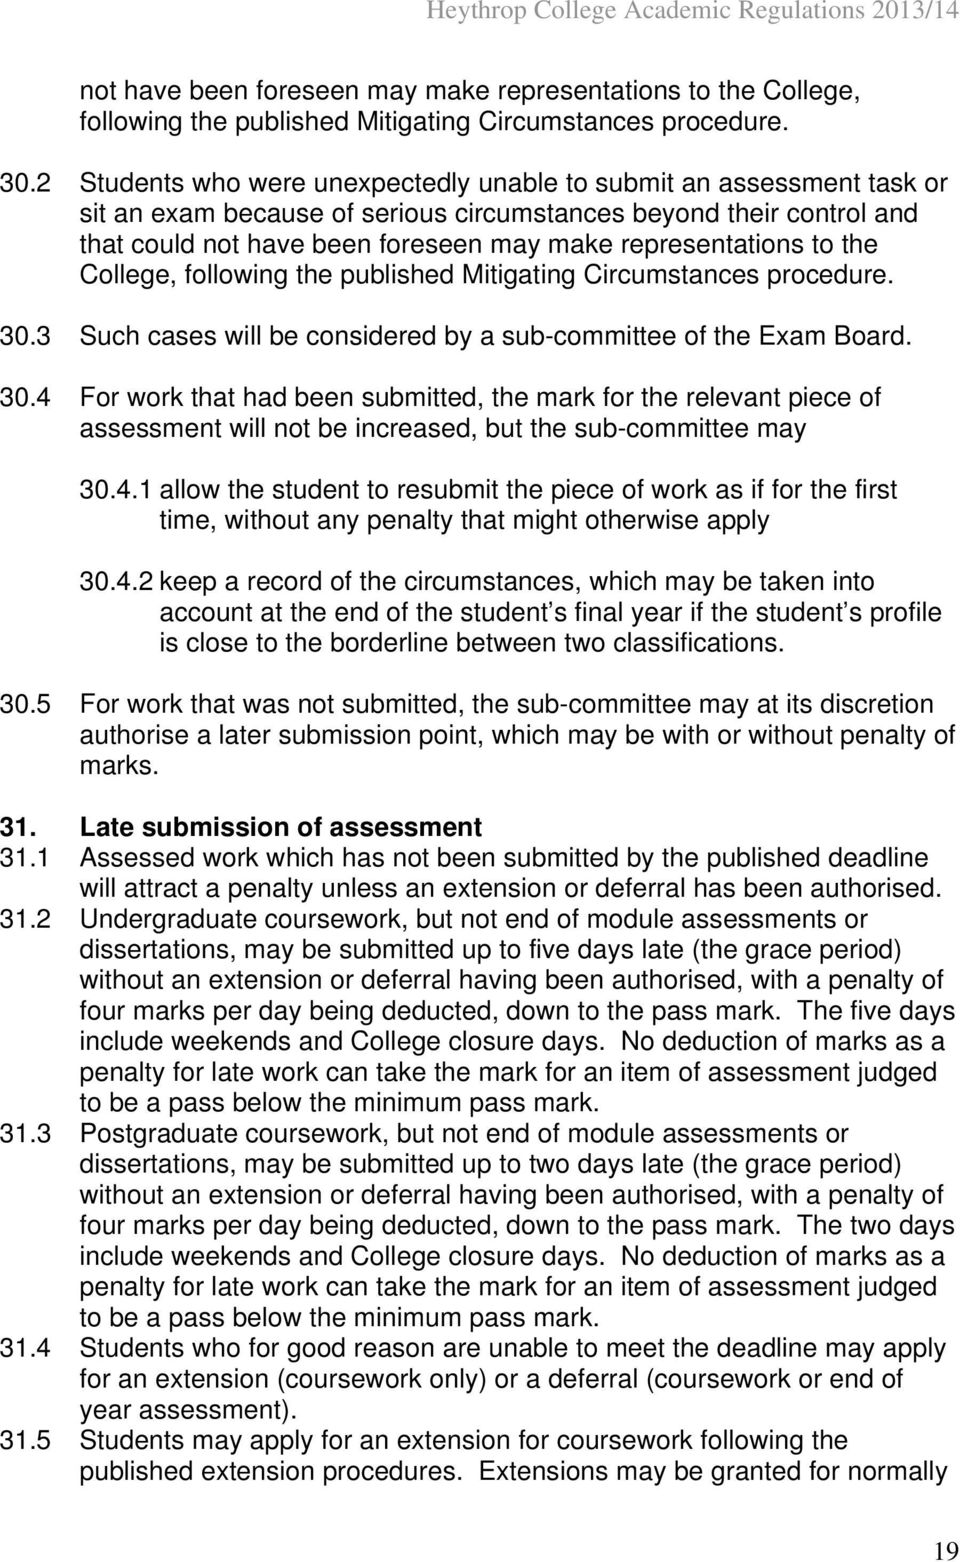 sub-committee of the Exam Board. 30.4 For work that had been submitted, the mark for the relevant piece of assessment will not be increased, but the sub-committee may 30.4.1 allow the student to resubmit the piece of work as if for the first time, without any penalty that might otherwise apply 30.